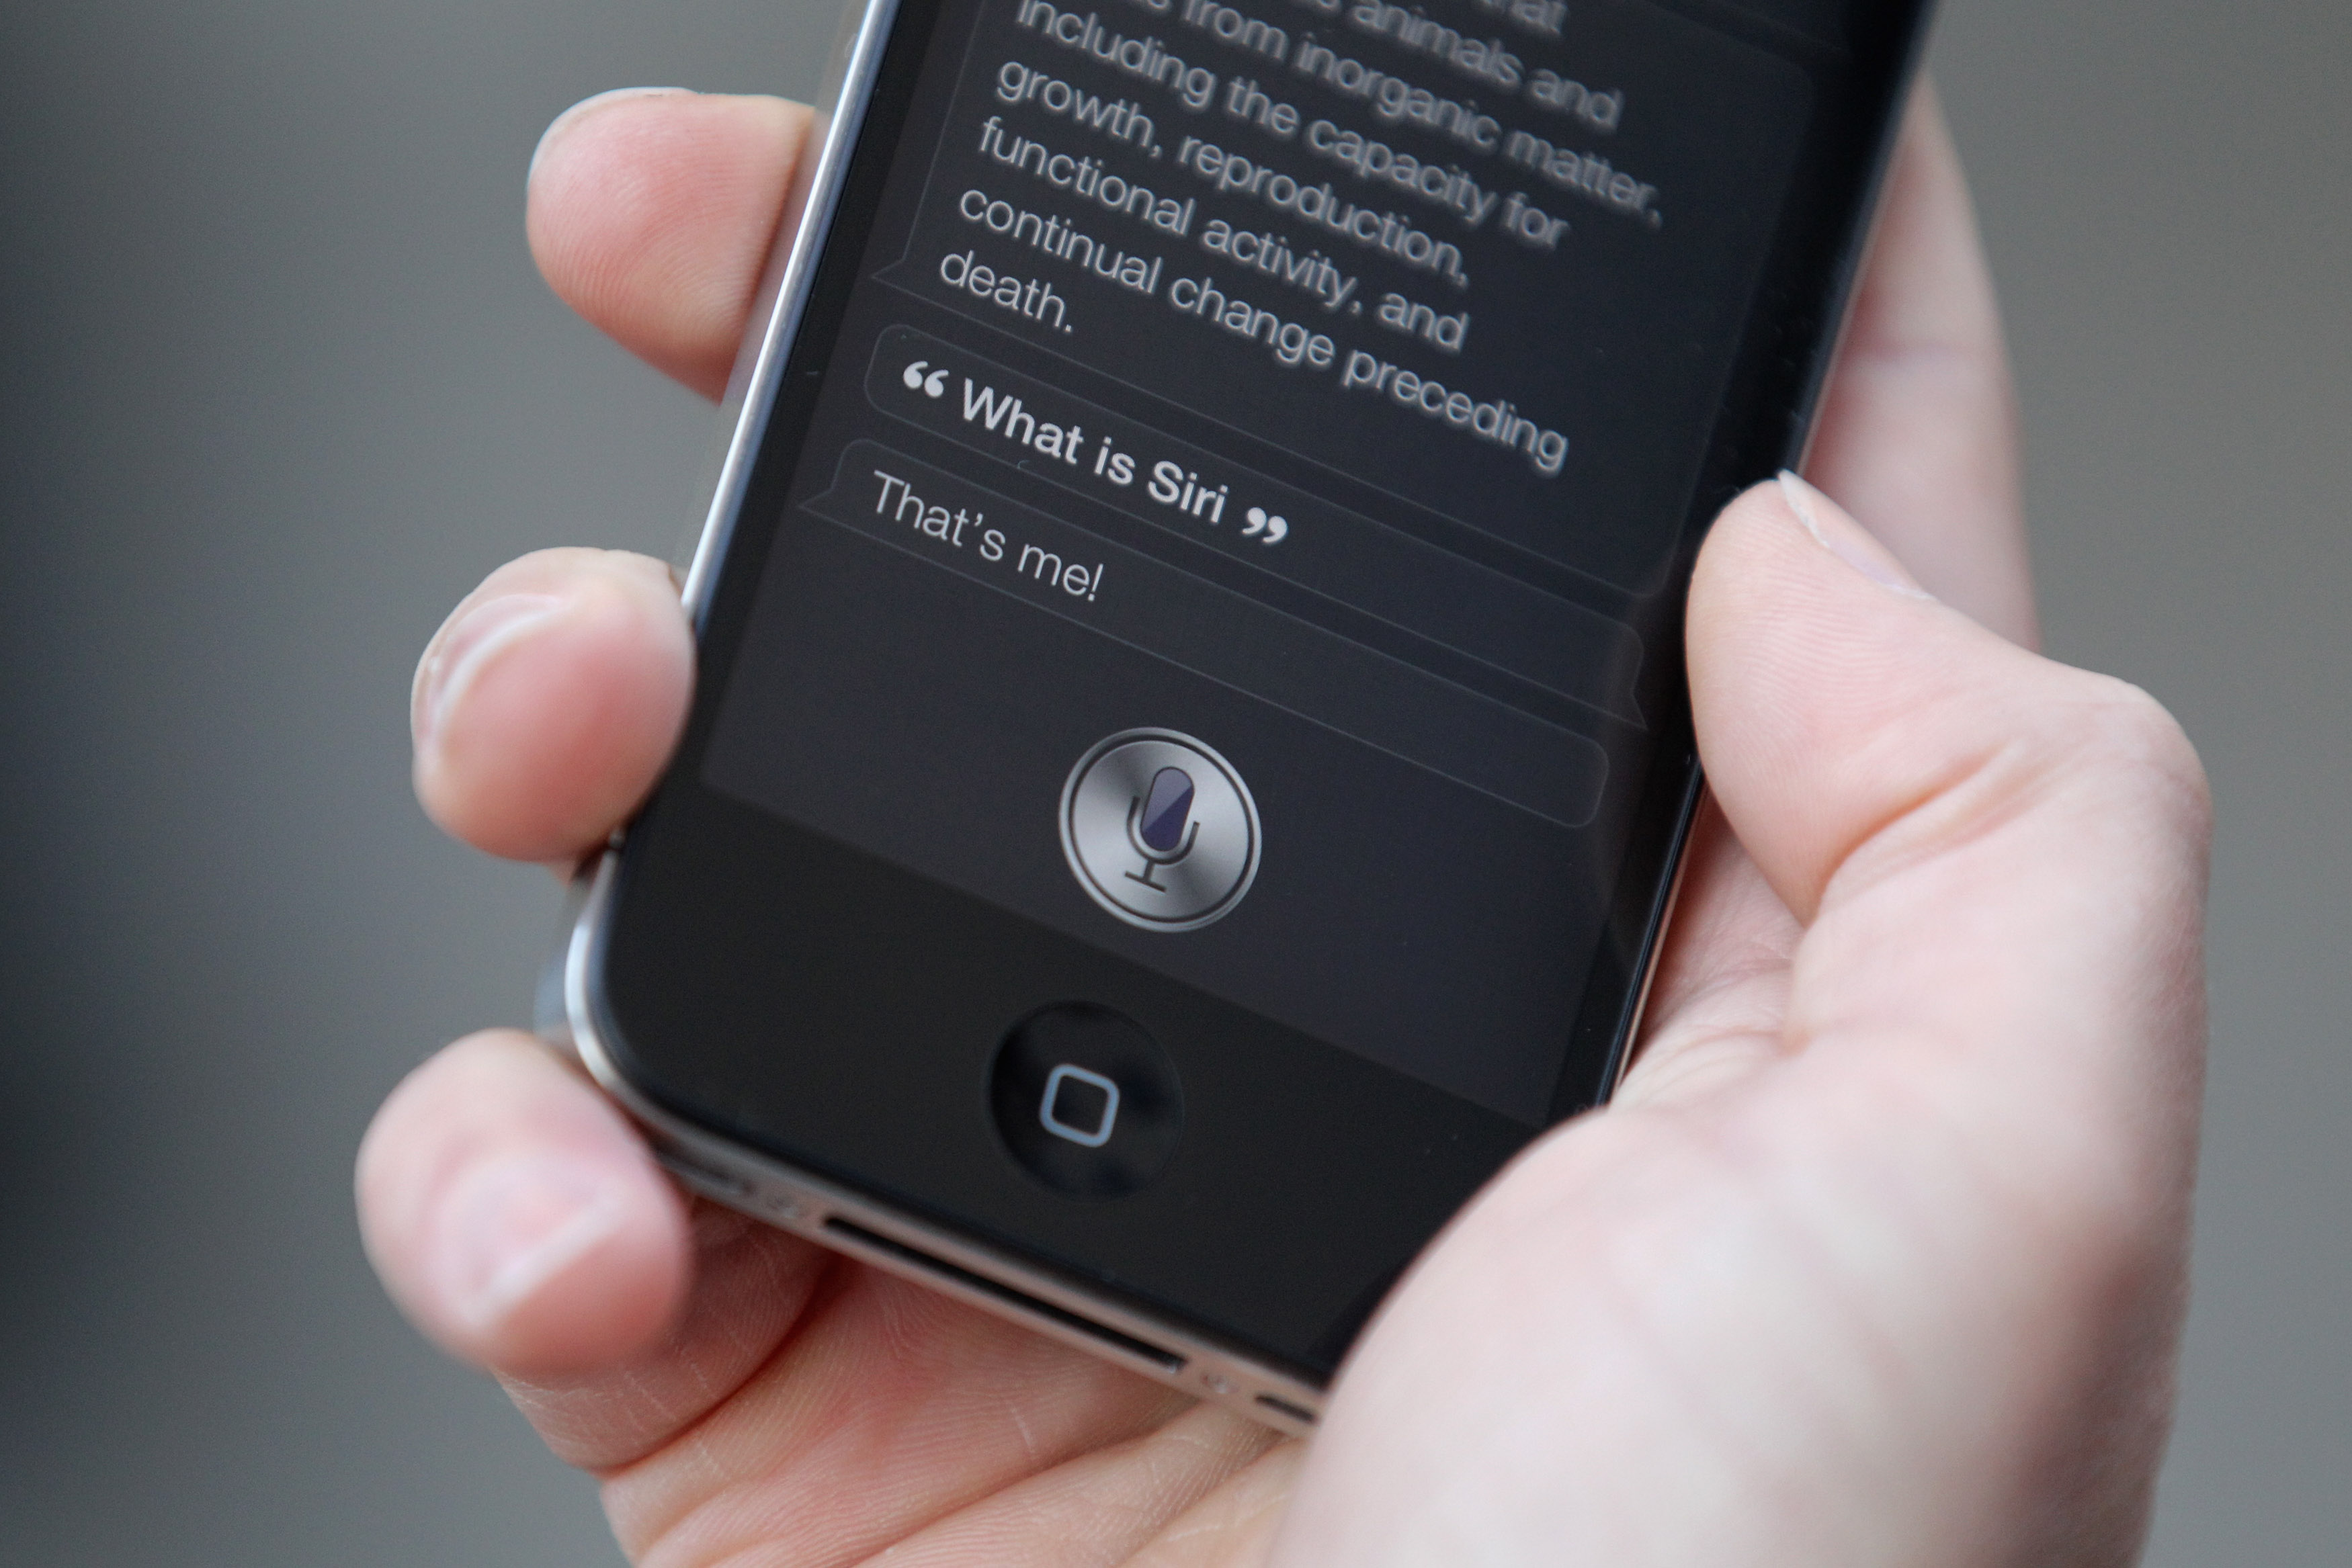 A man uses 'Siri' on the new iPhone 4S in Covent Garden on Oct.14, 2011 in London, England.